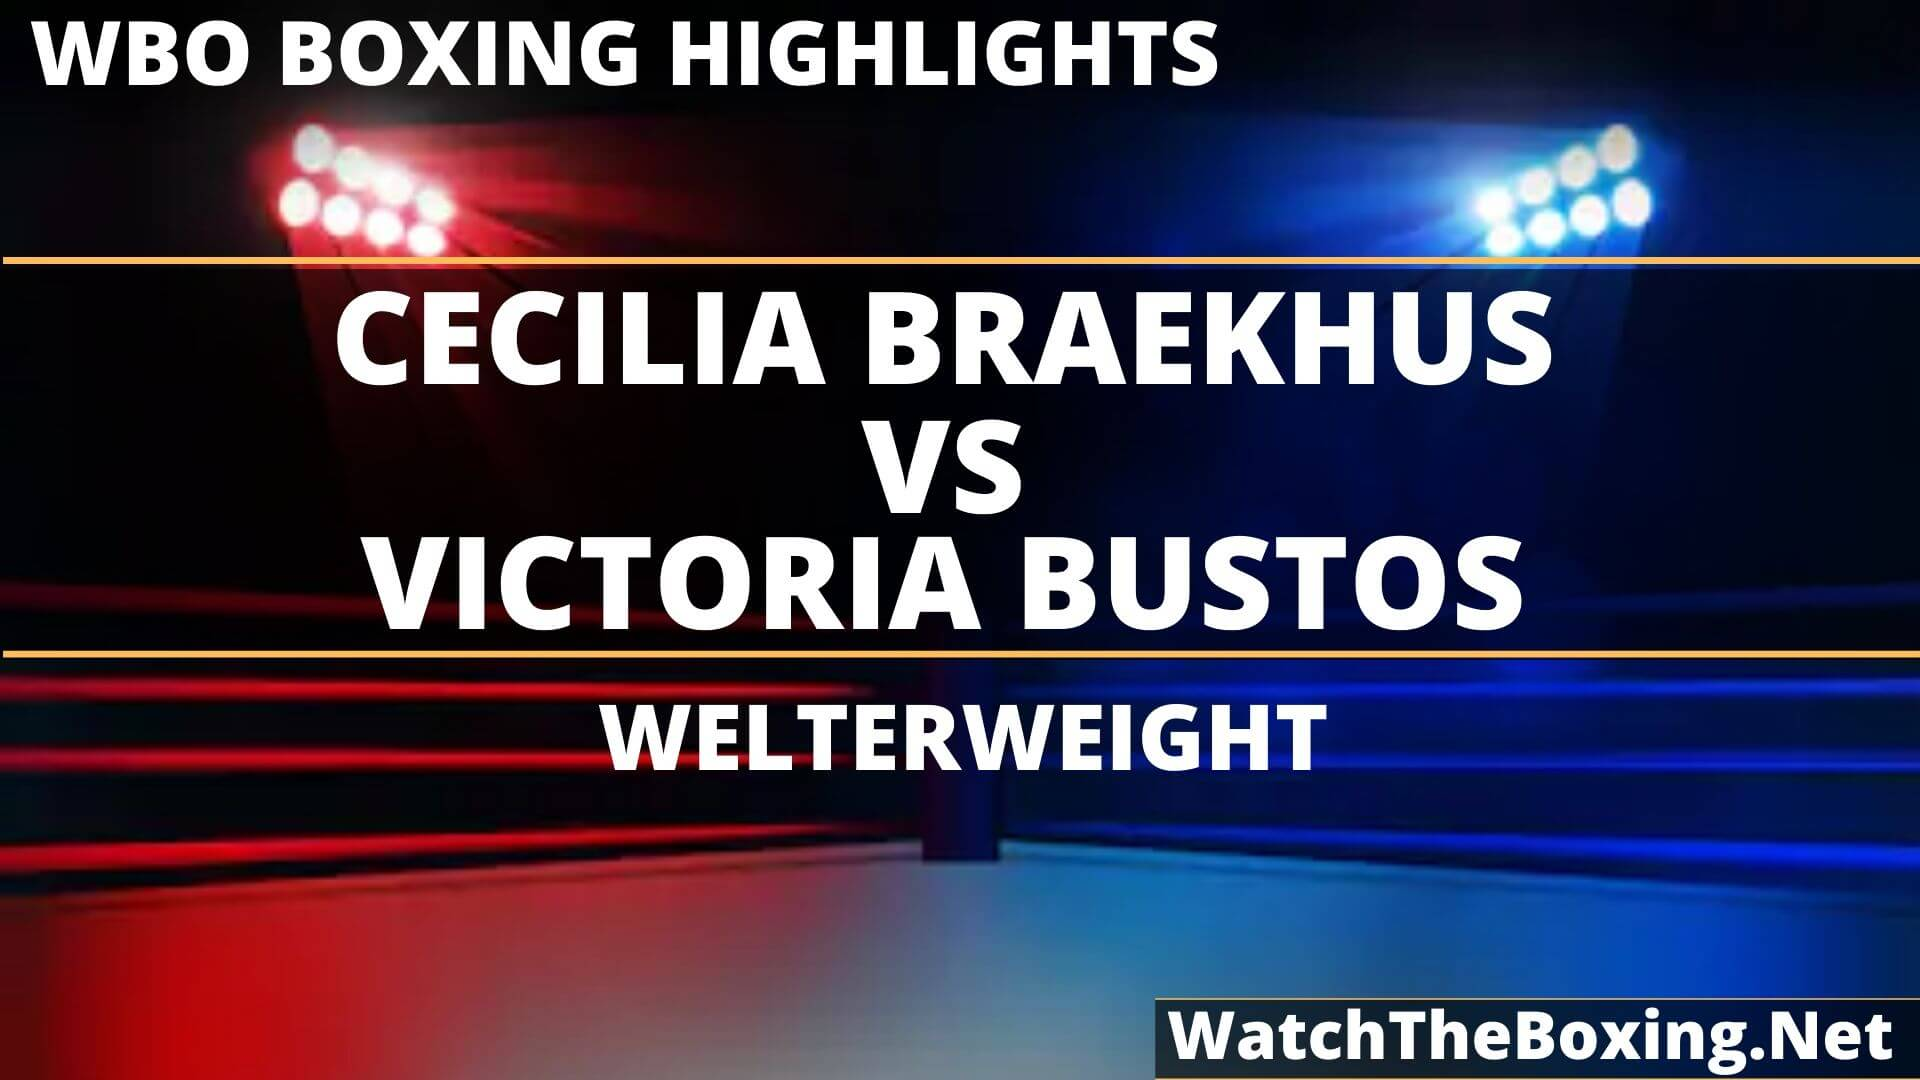 Cecilia Braekhus Vs Victoria Bustos Highlights 2019